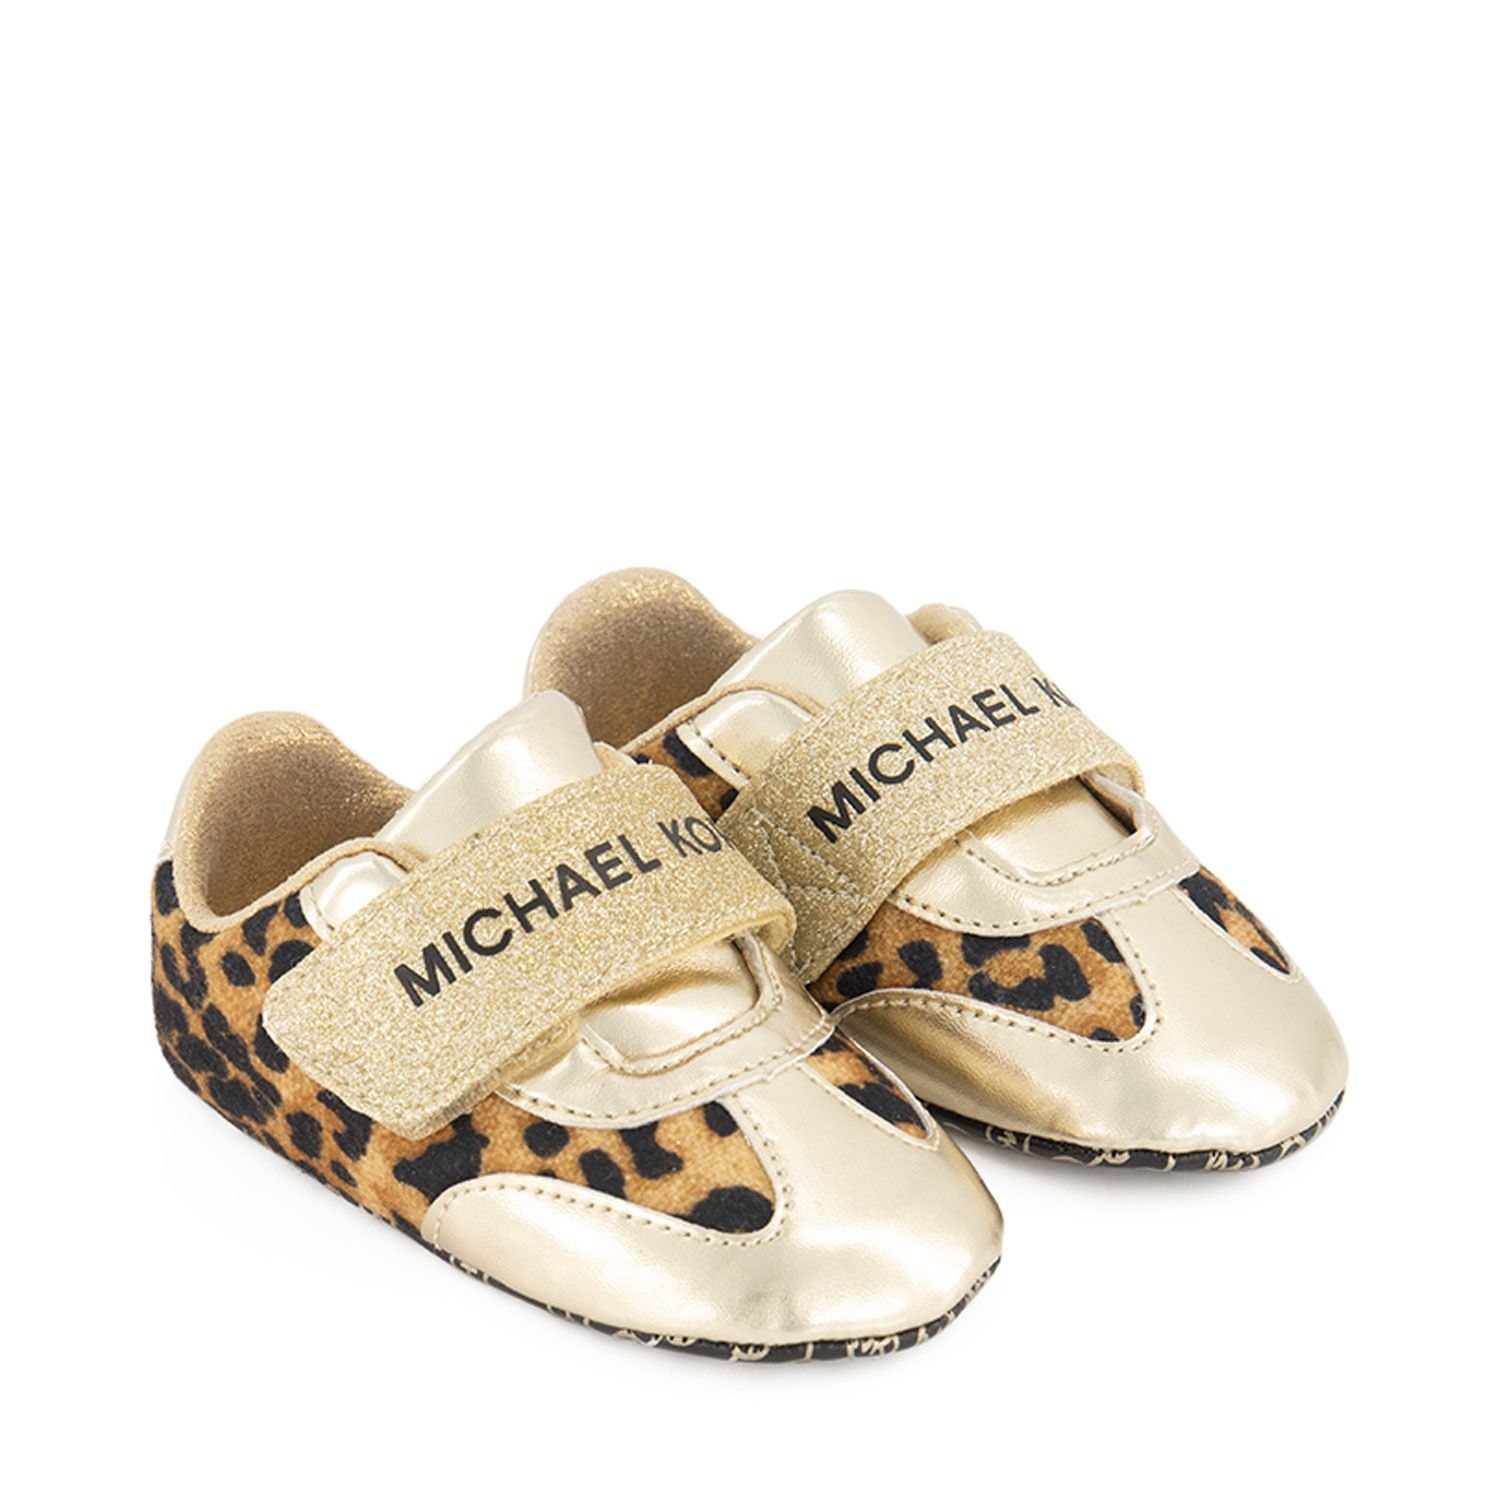 Picture of Michael Kors MK1100170 baby shoes gold